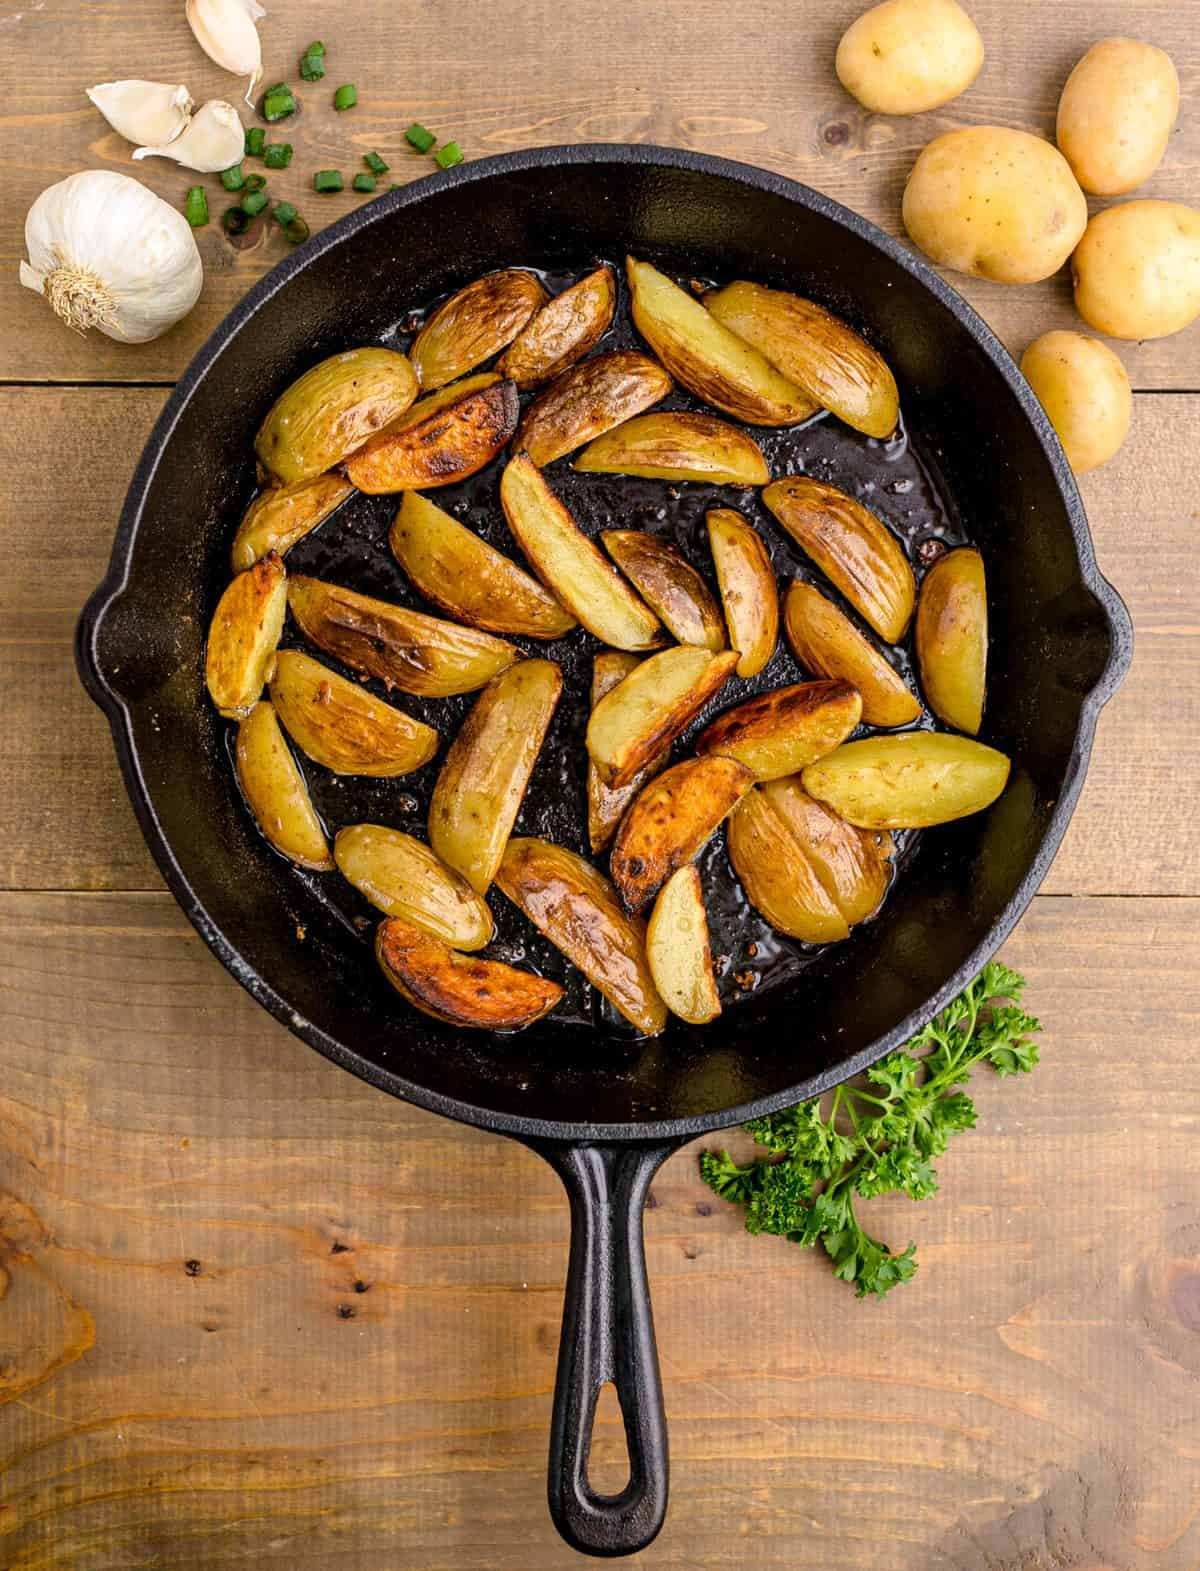 Browned potatoes in cast iron skillet.